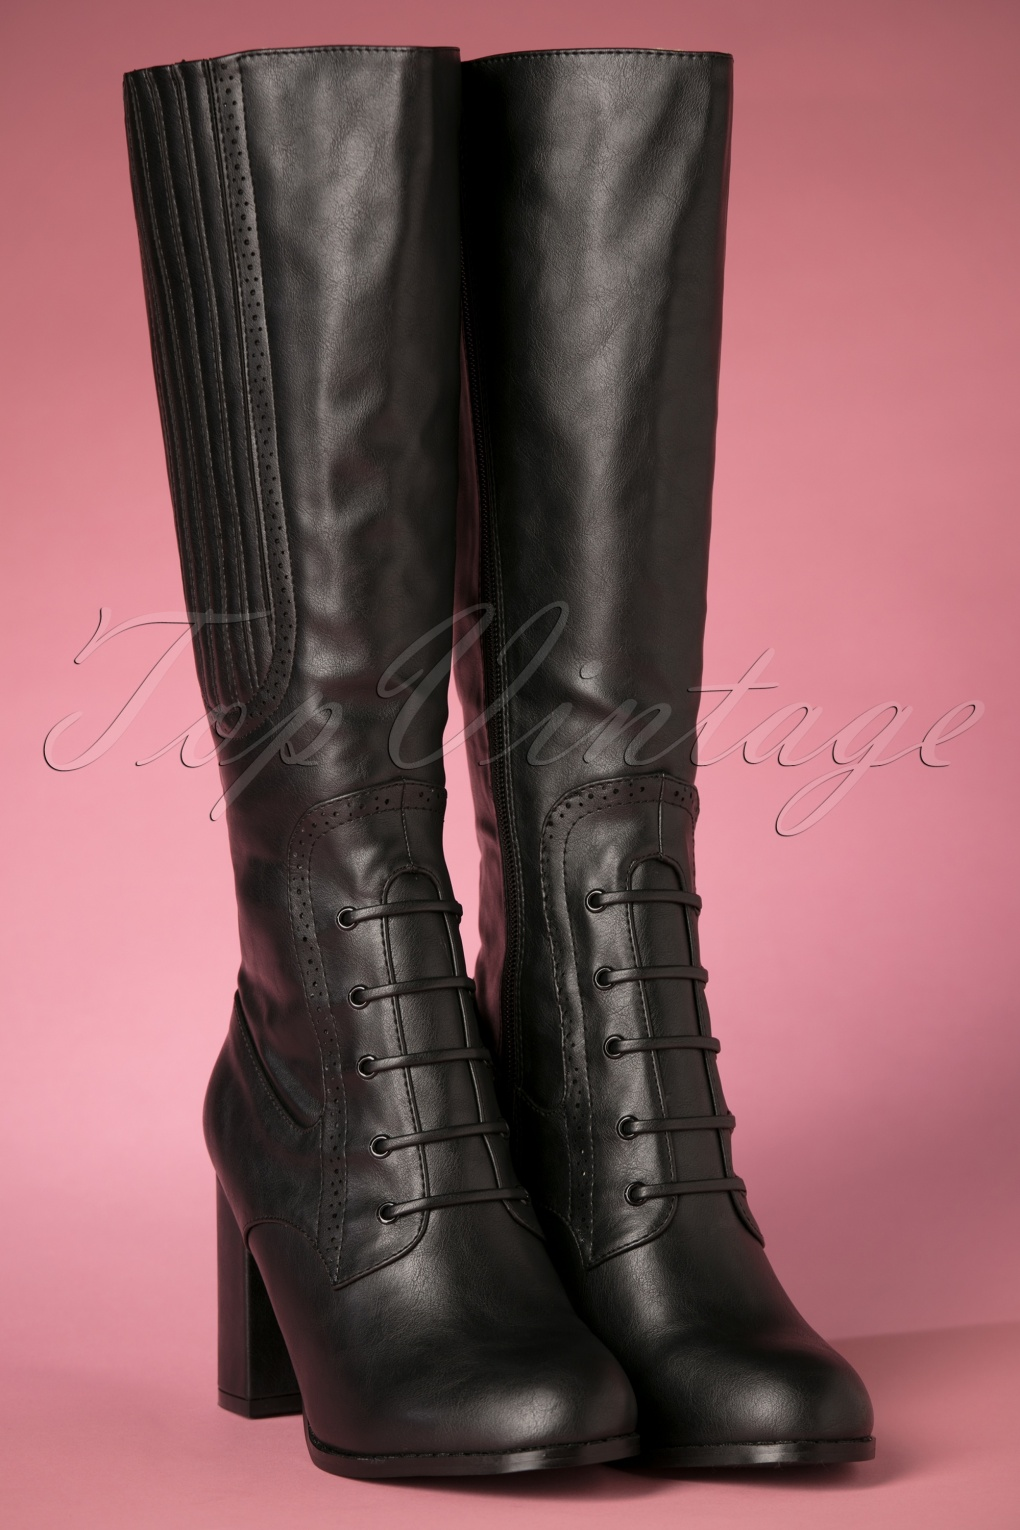 Vintage Style Shoes, Vintage Inspired Shoes 40s Roscoe Boots in Black £91.77 AT vintagedancer.com